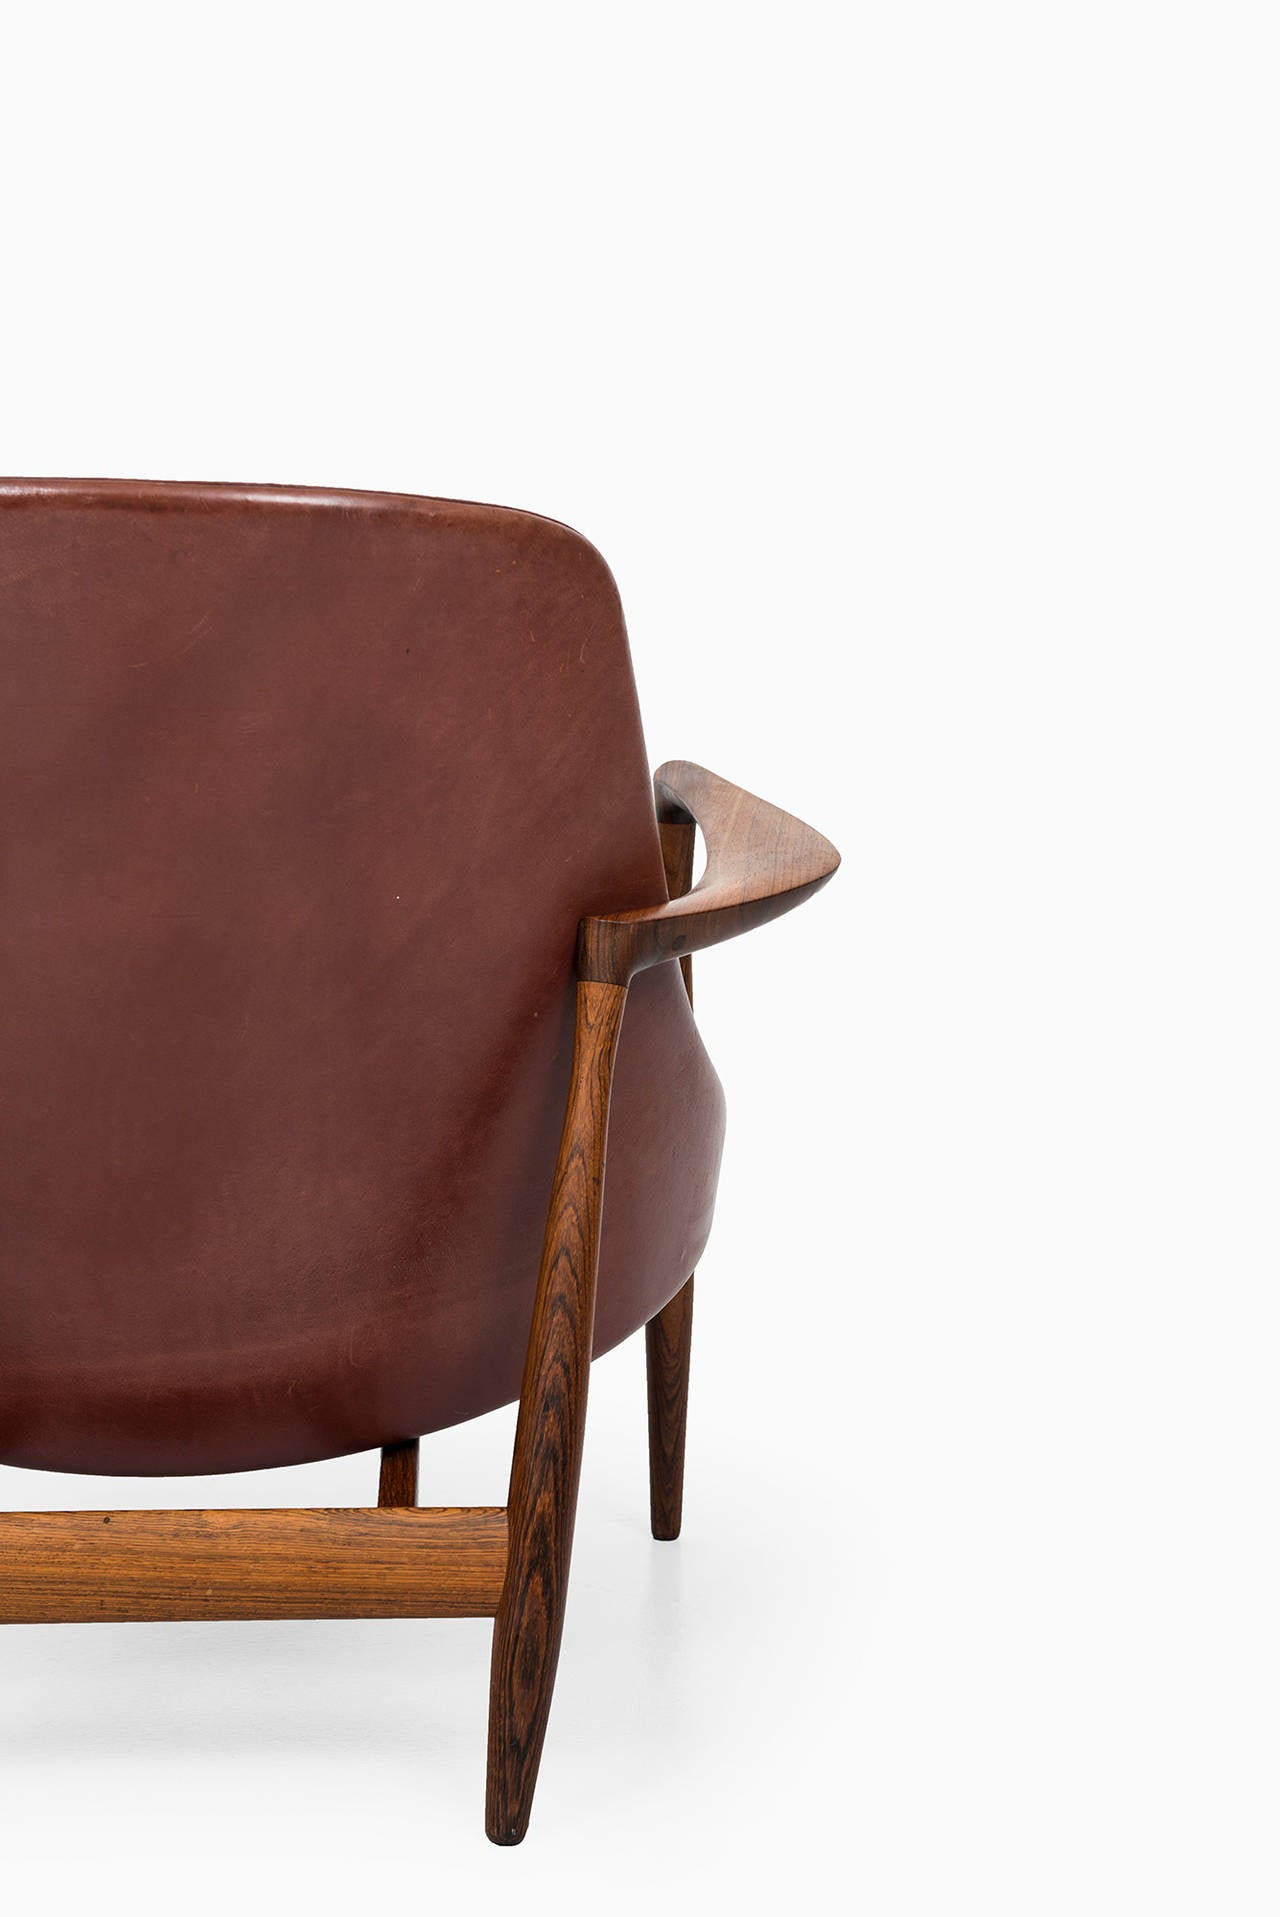 Ib Kofod-Larsen Elizabeth Easy Chairs by Christensen & Larsen in Denmark 7